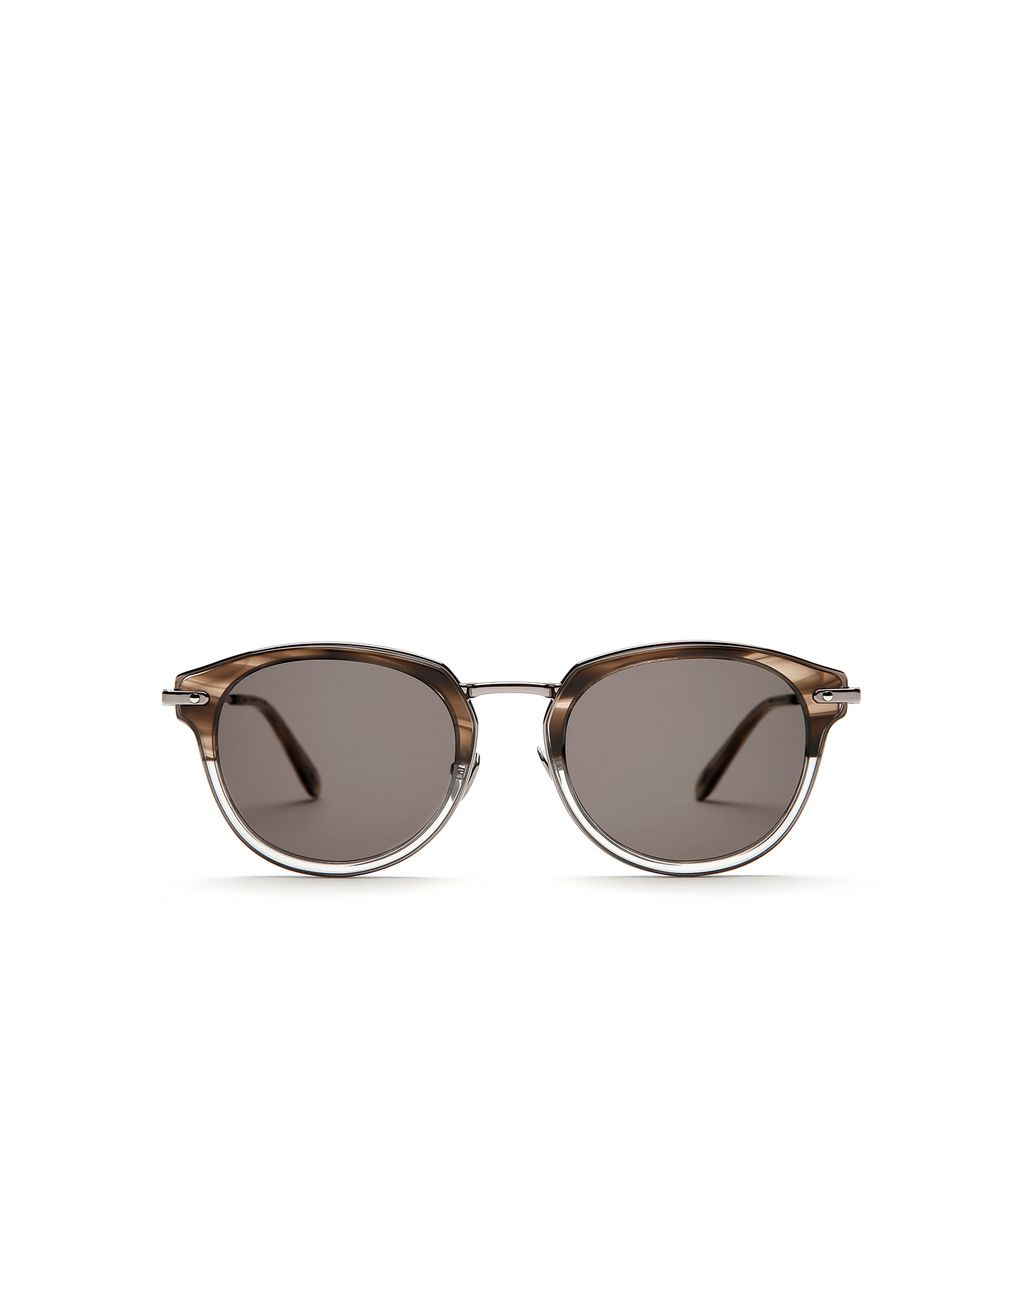 BRIONI Grey and Brown Sunglasses with Grey Lenses  Sunglasses Man f